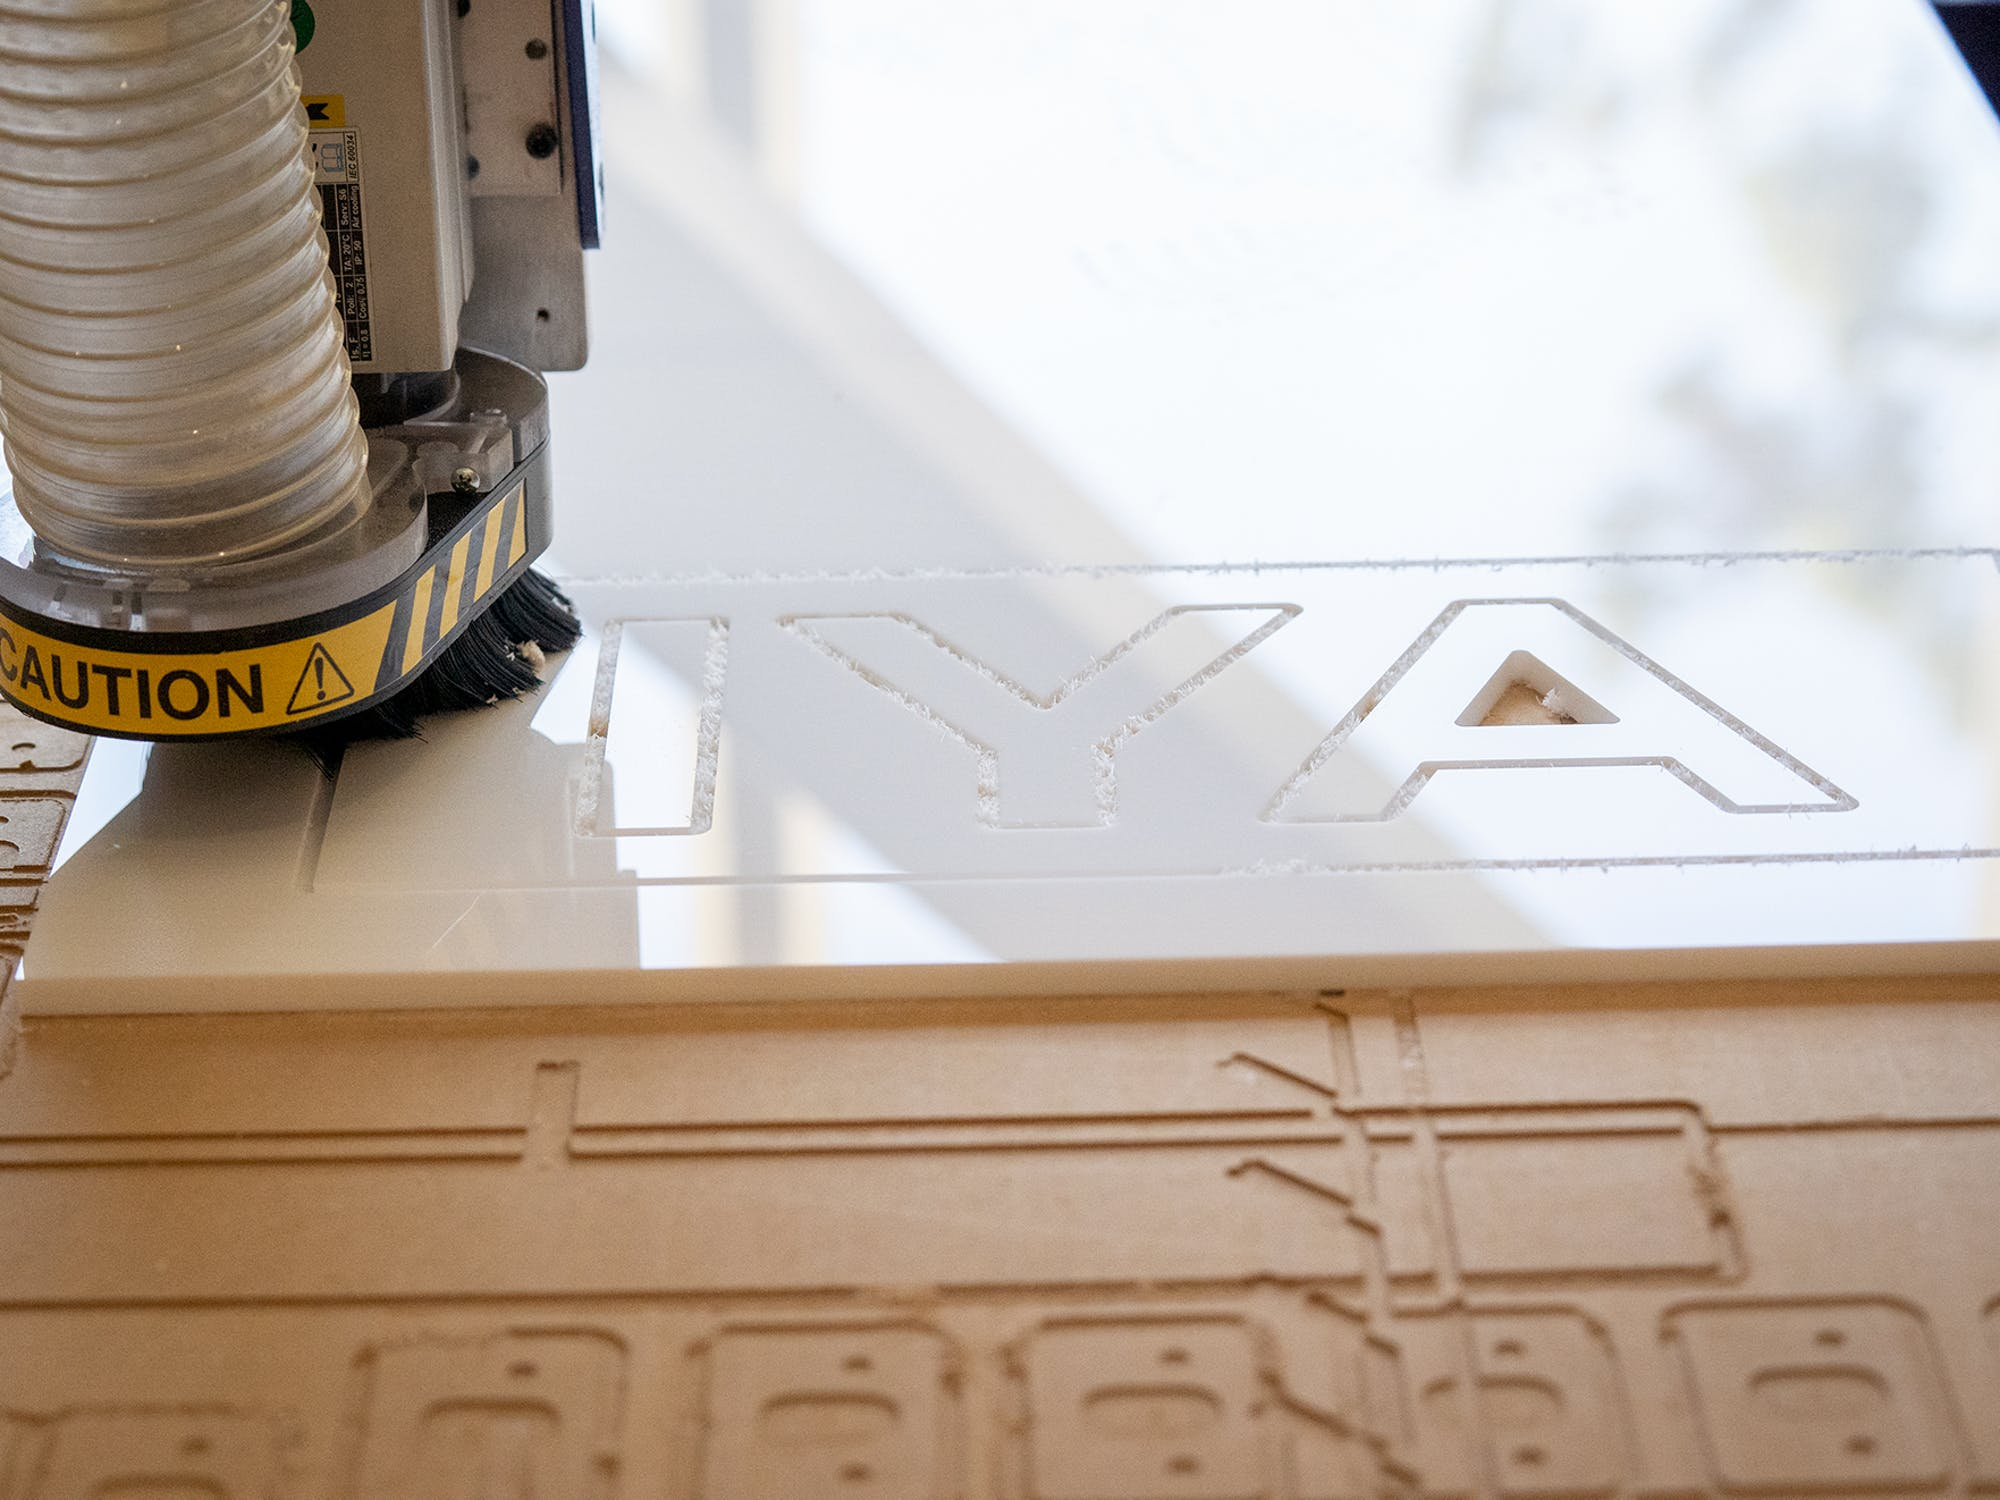 Machine etching letters on white plastic sheet